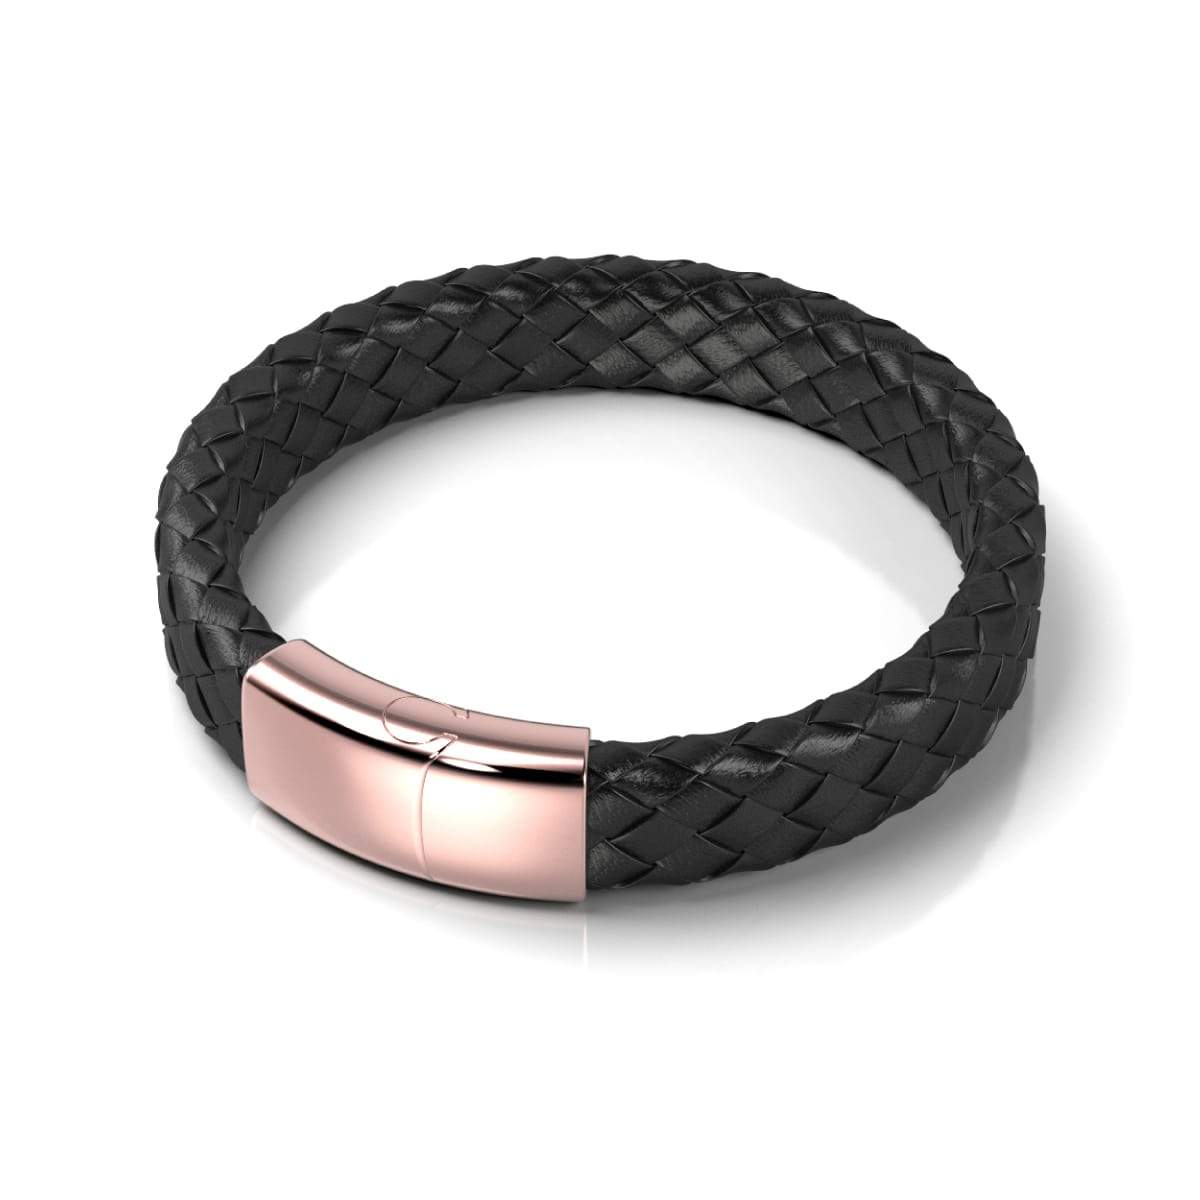 18k Rose Gold | Black Leather Engravable Bracelet | Deluxe